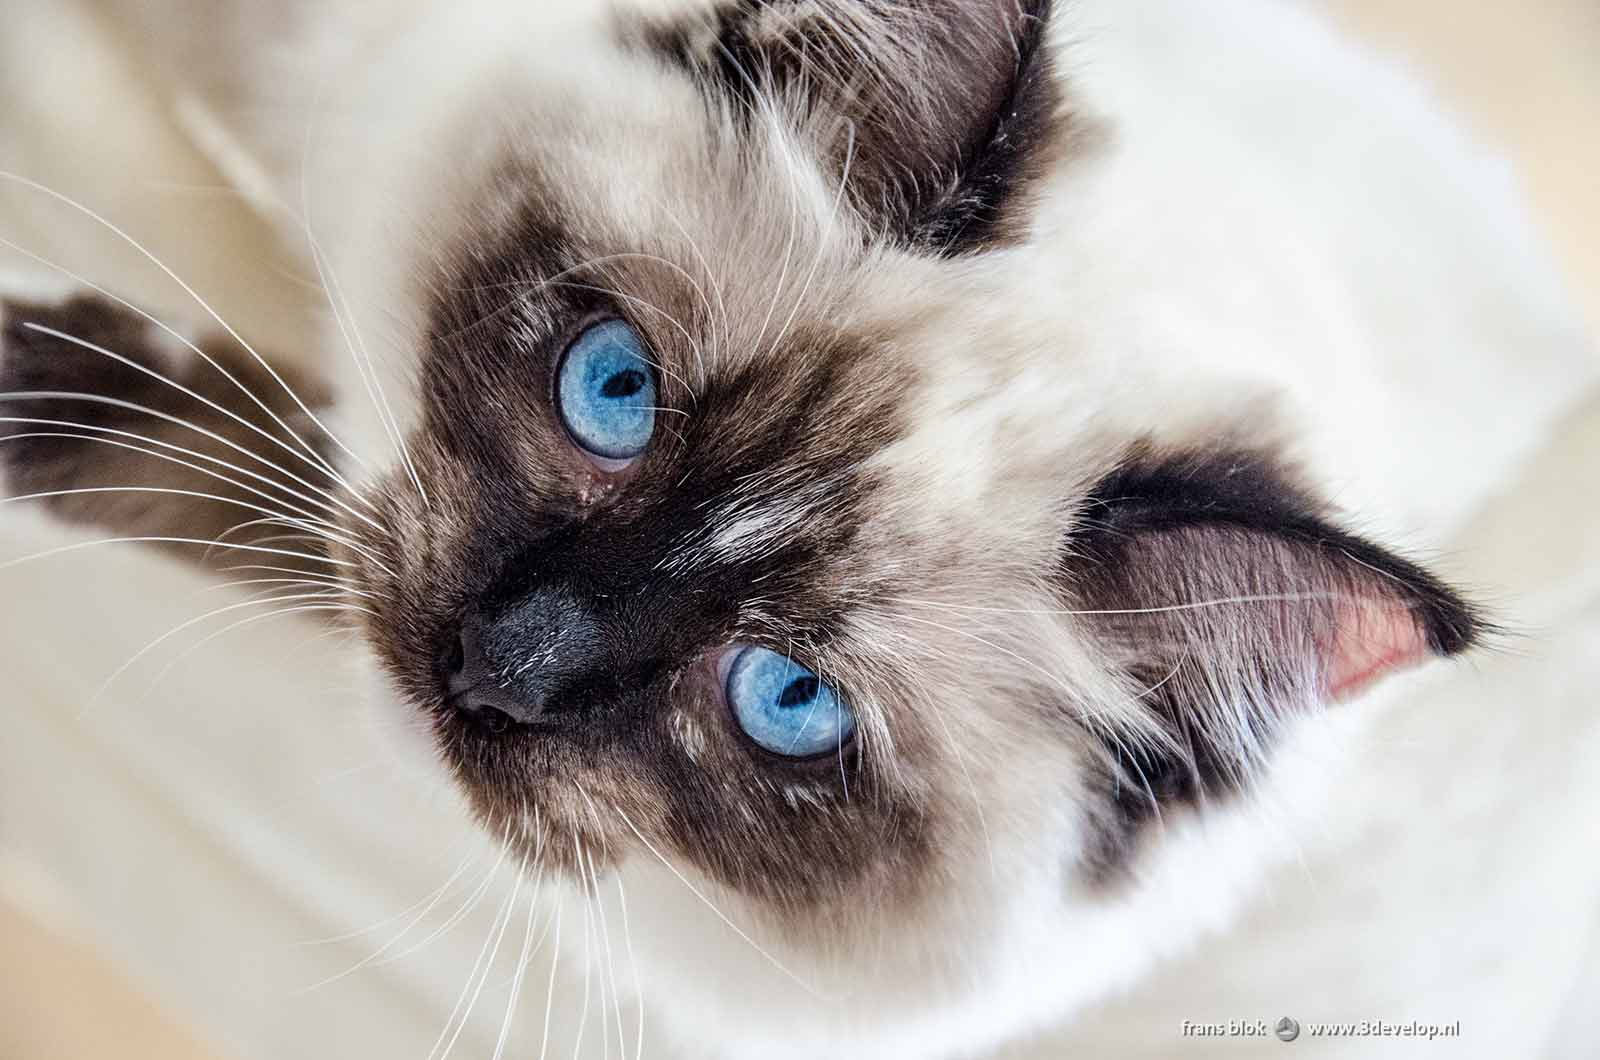 Close up of a ragdoll cat, mostly white with some black spots and clear blue eyes